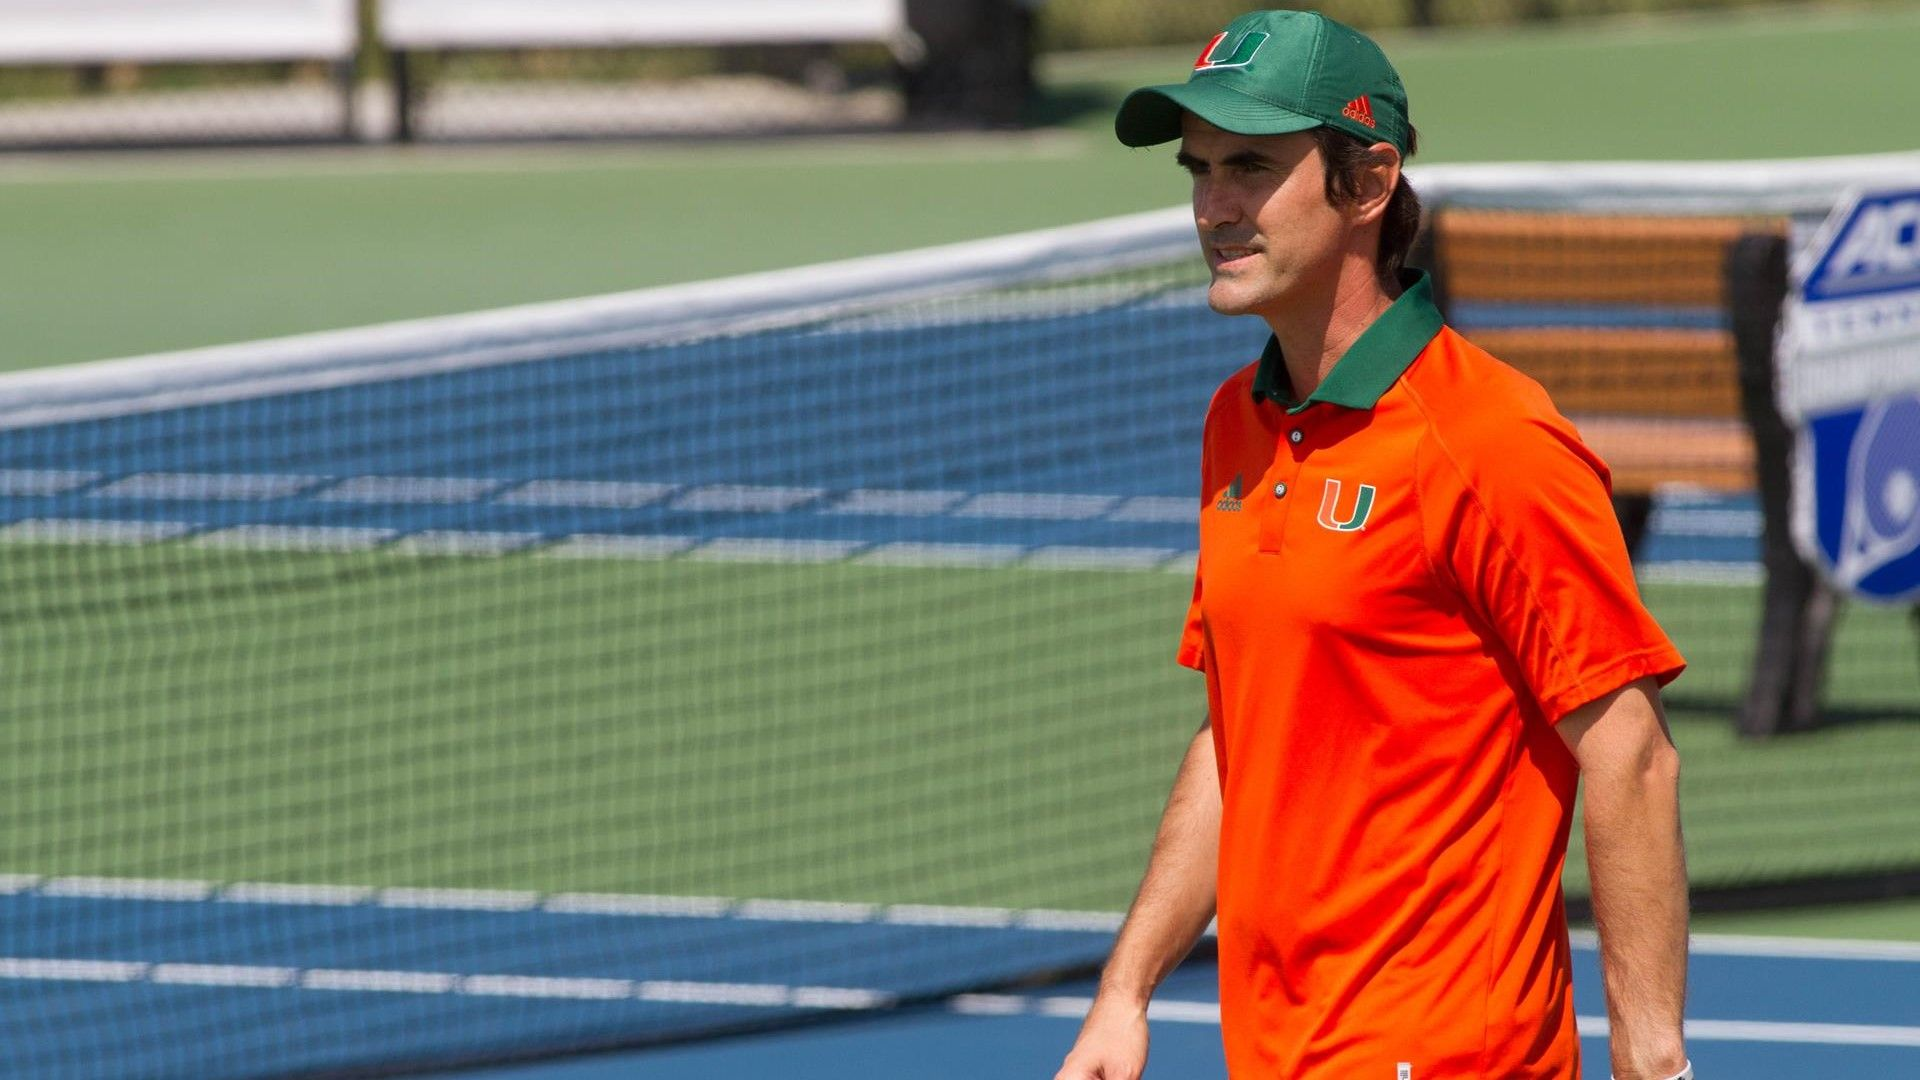 Men's Tennis' Fall Openers Cancelled